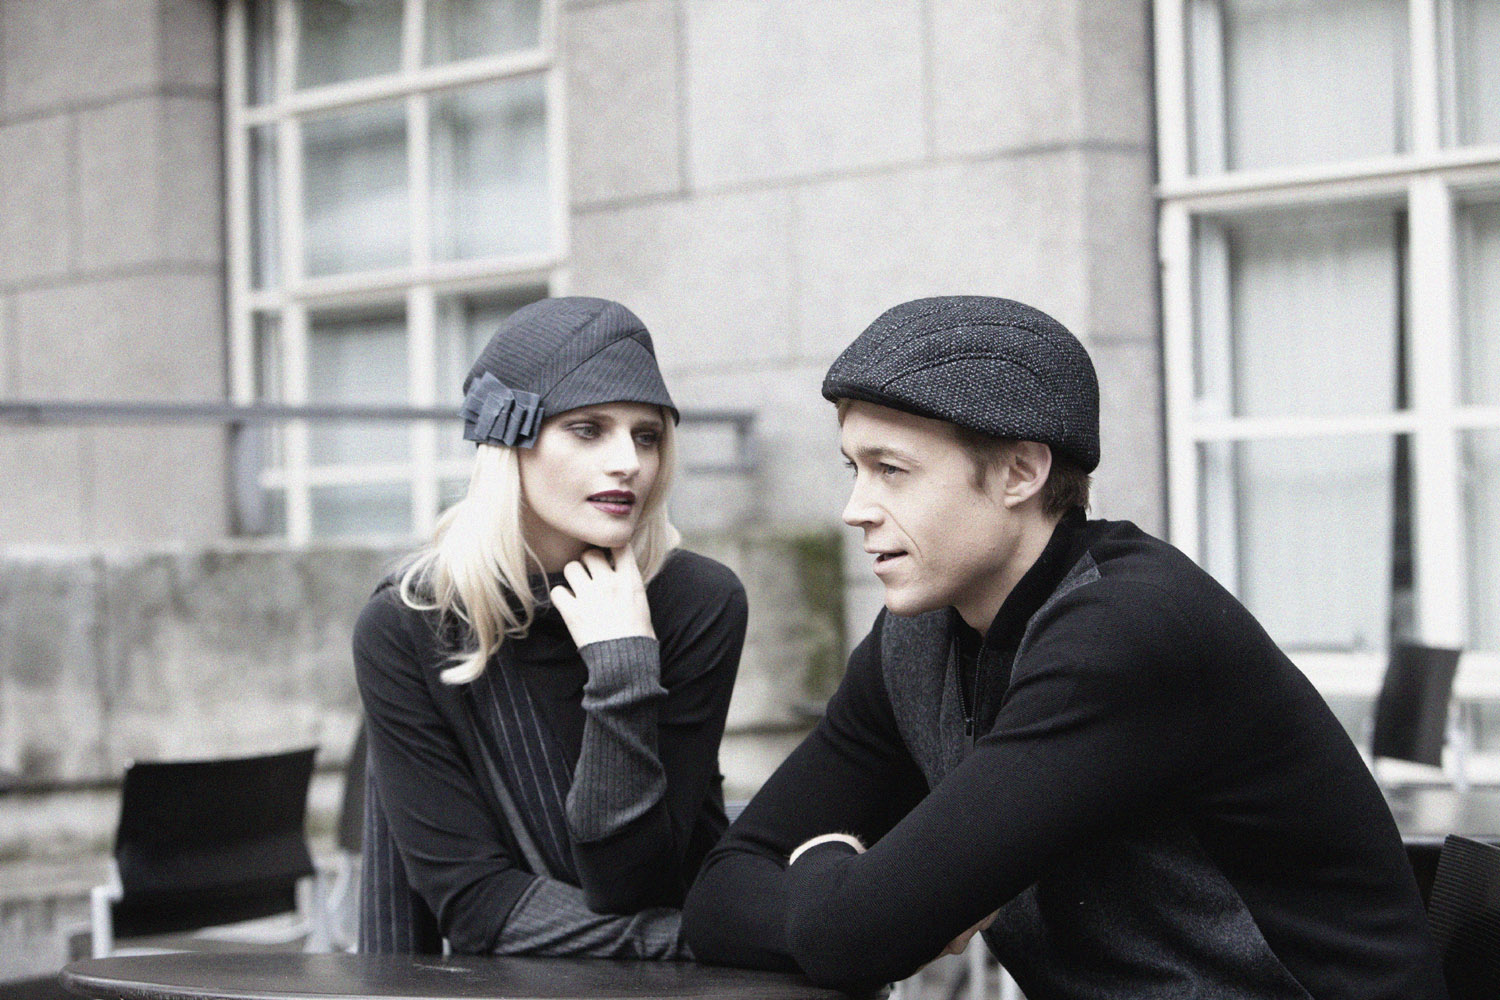 'Peppy' cloche and 'Gower' beret-cap